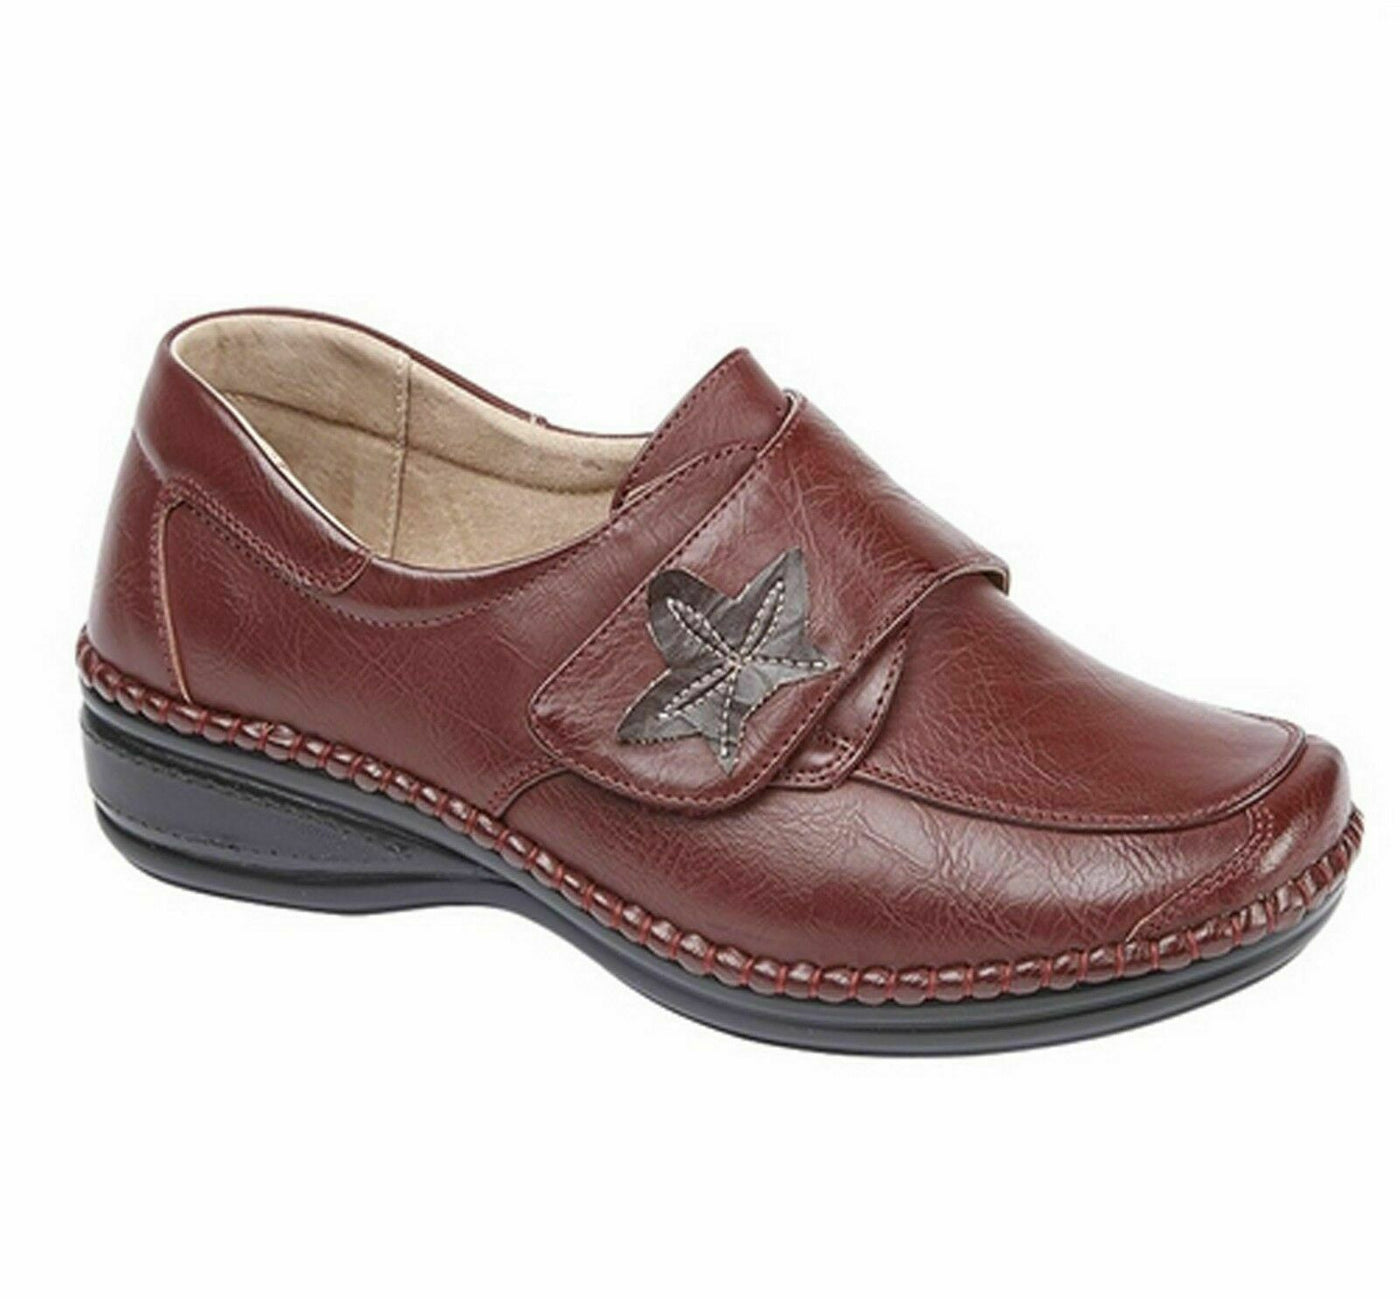 0b836b638fa41 Boulevard L712D Womens Extra Wide Fit EEE Casual Smart Shoes Touch Fas –  The Shoe Centre